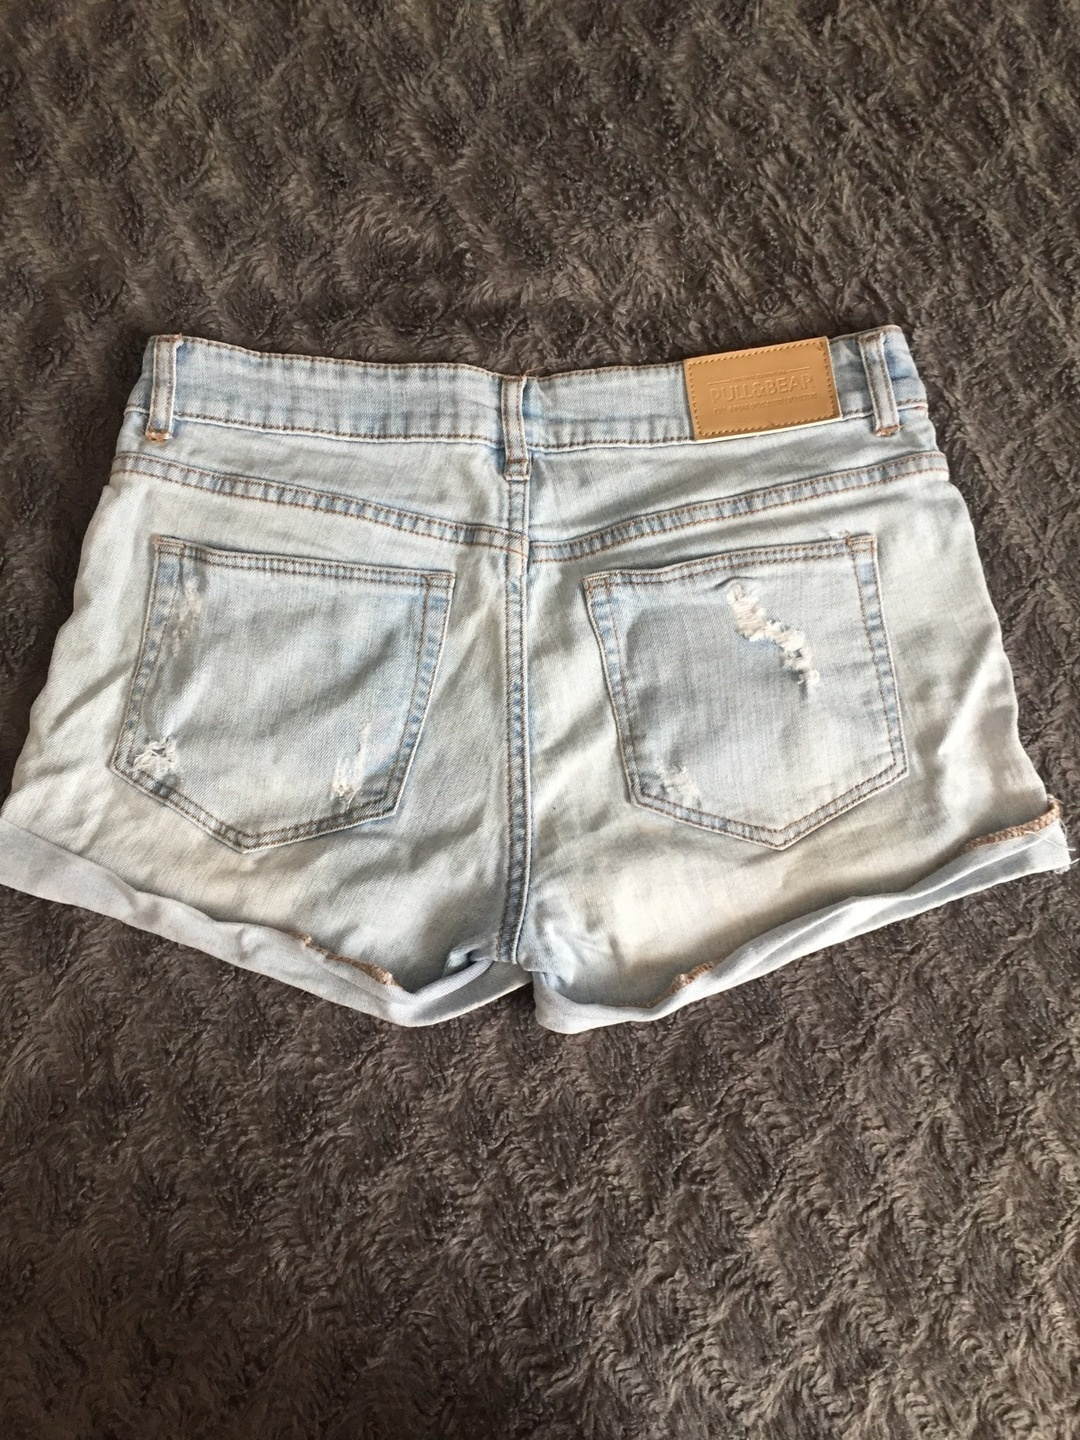 Damers shorts - PULL&BEAR photo 2